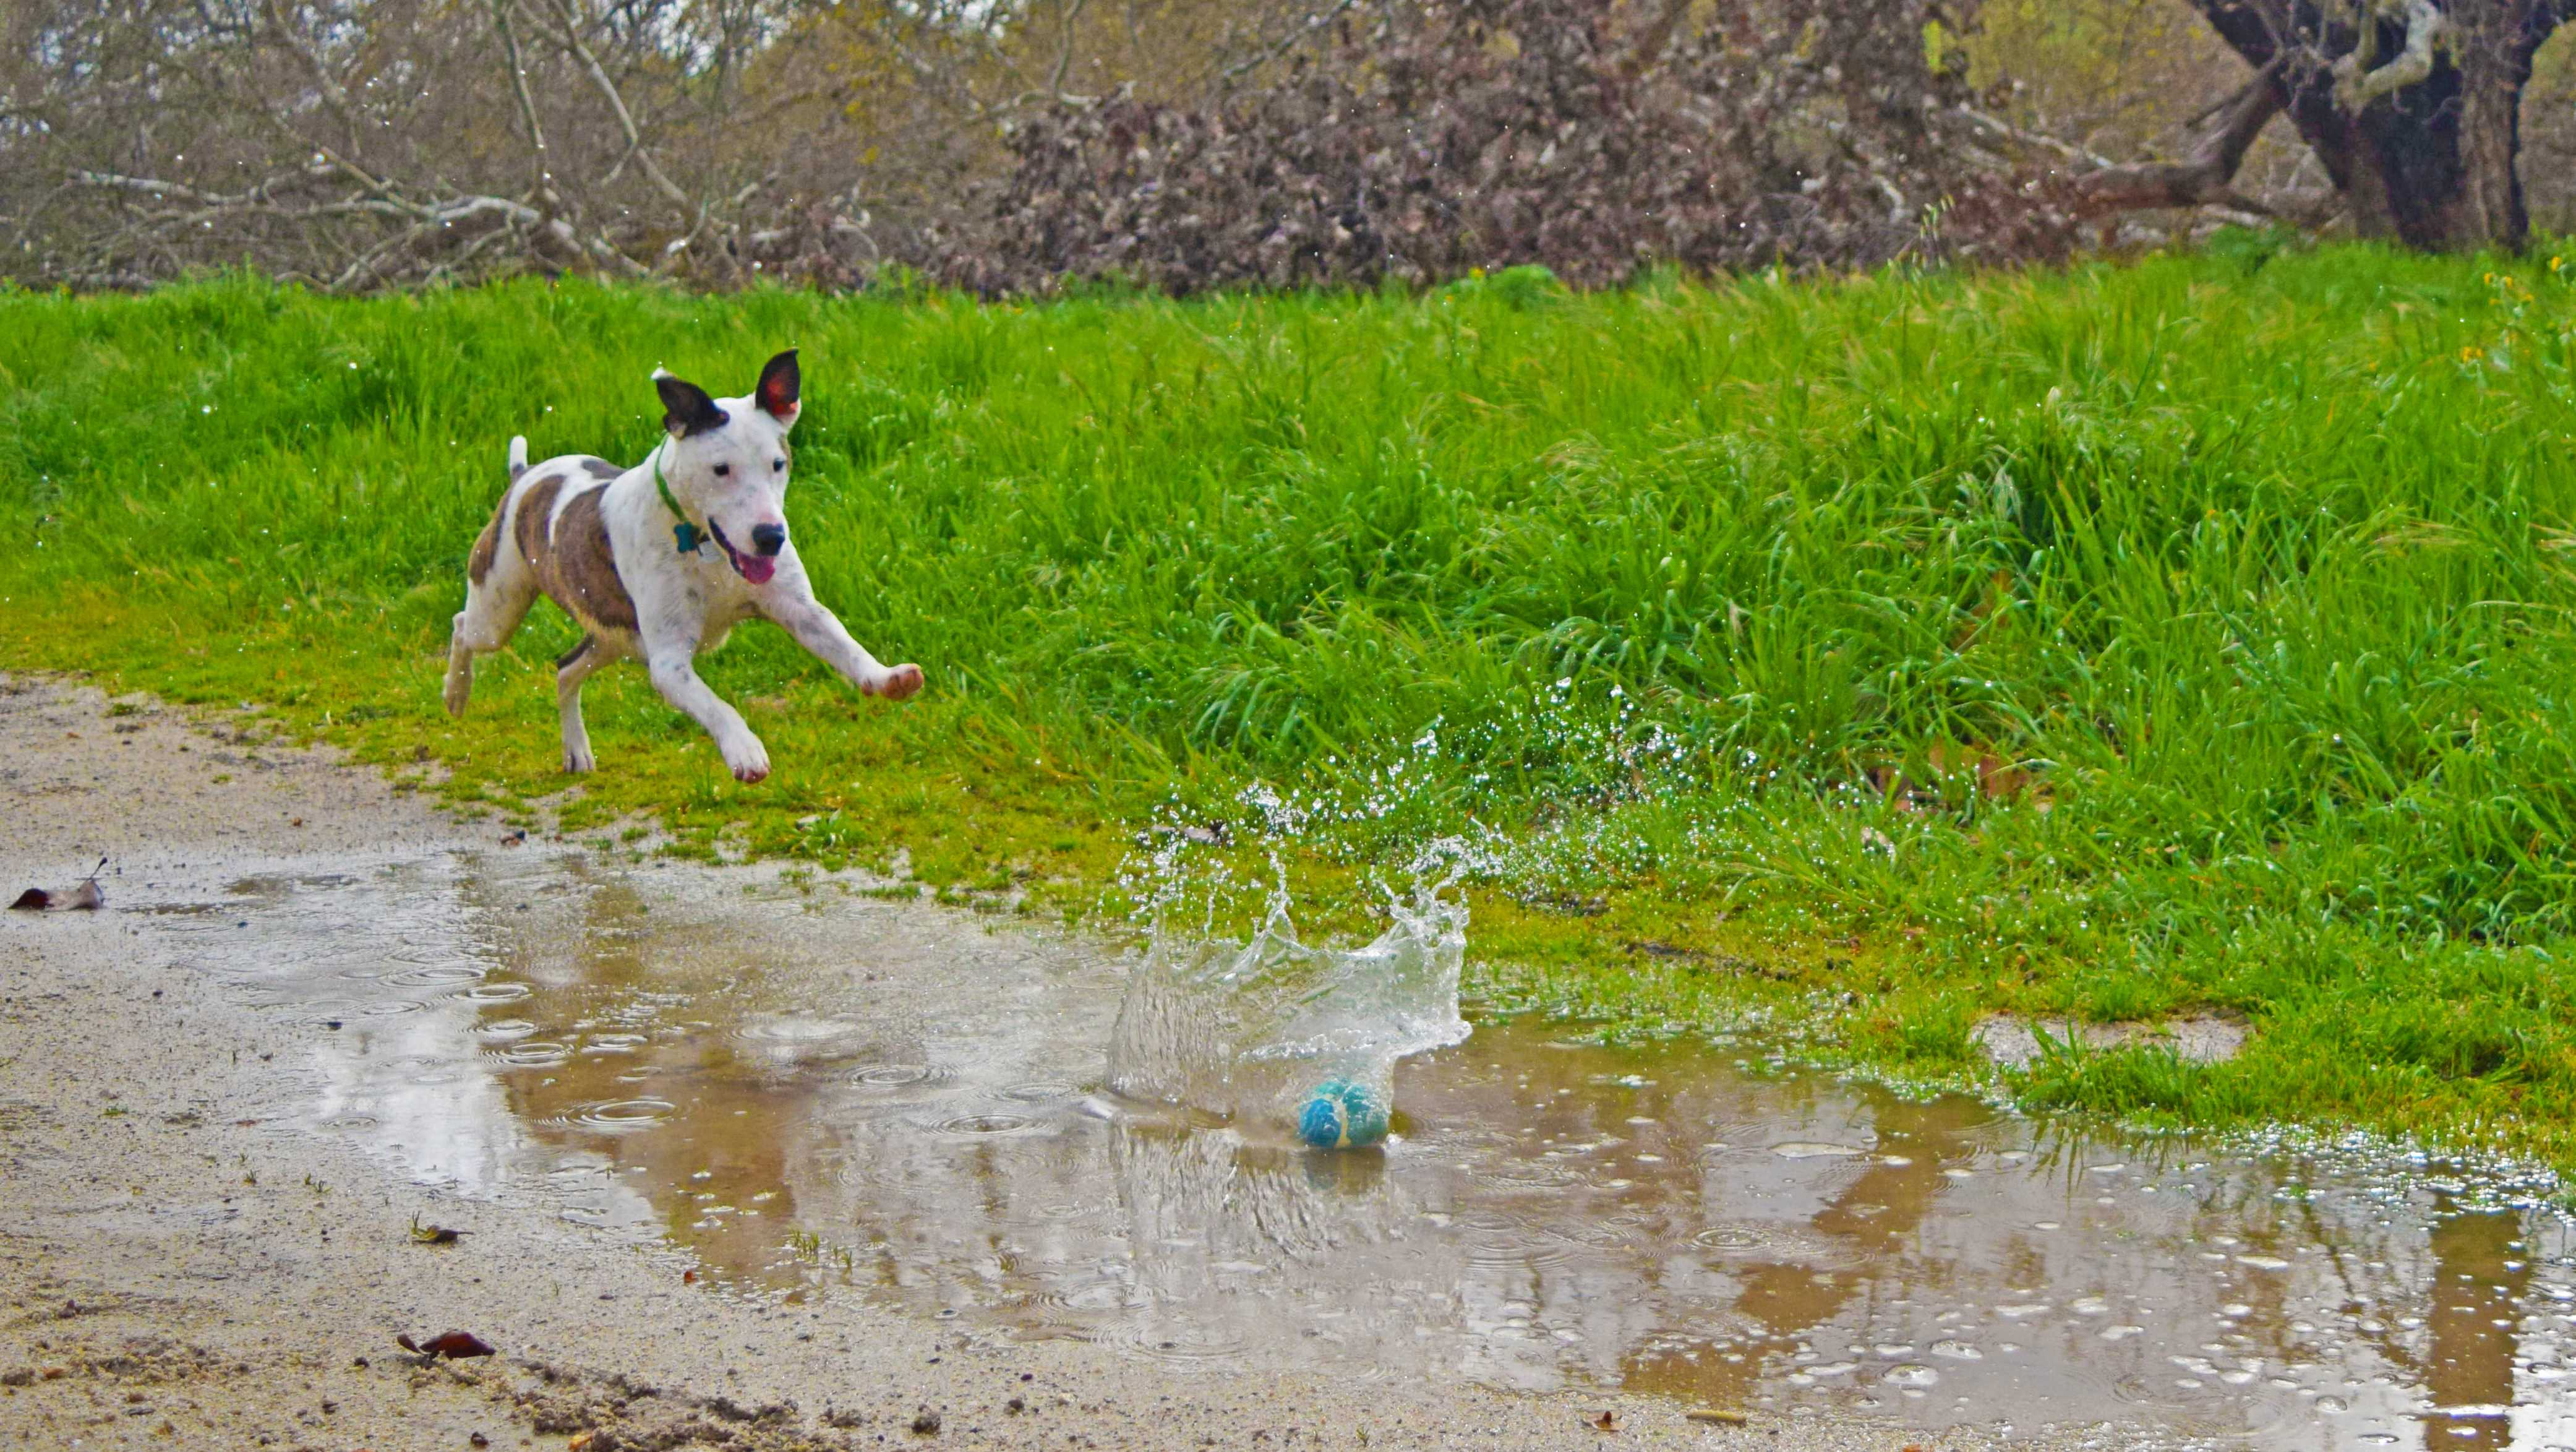 Jimmy the dog plays fetch in a puddle at Fort Ord.